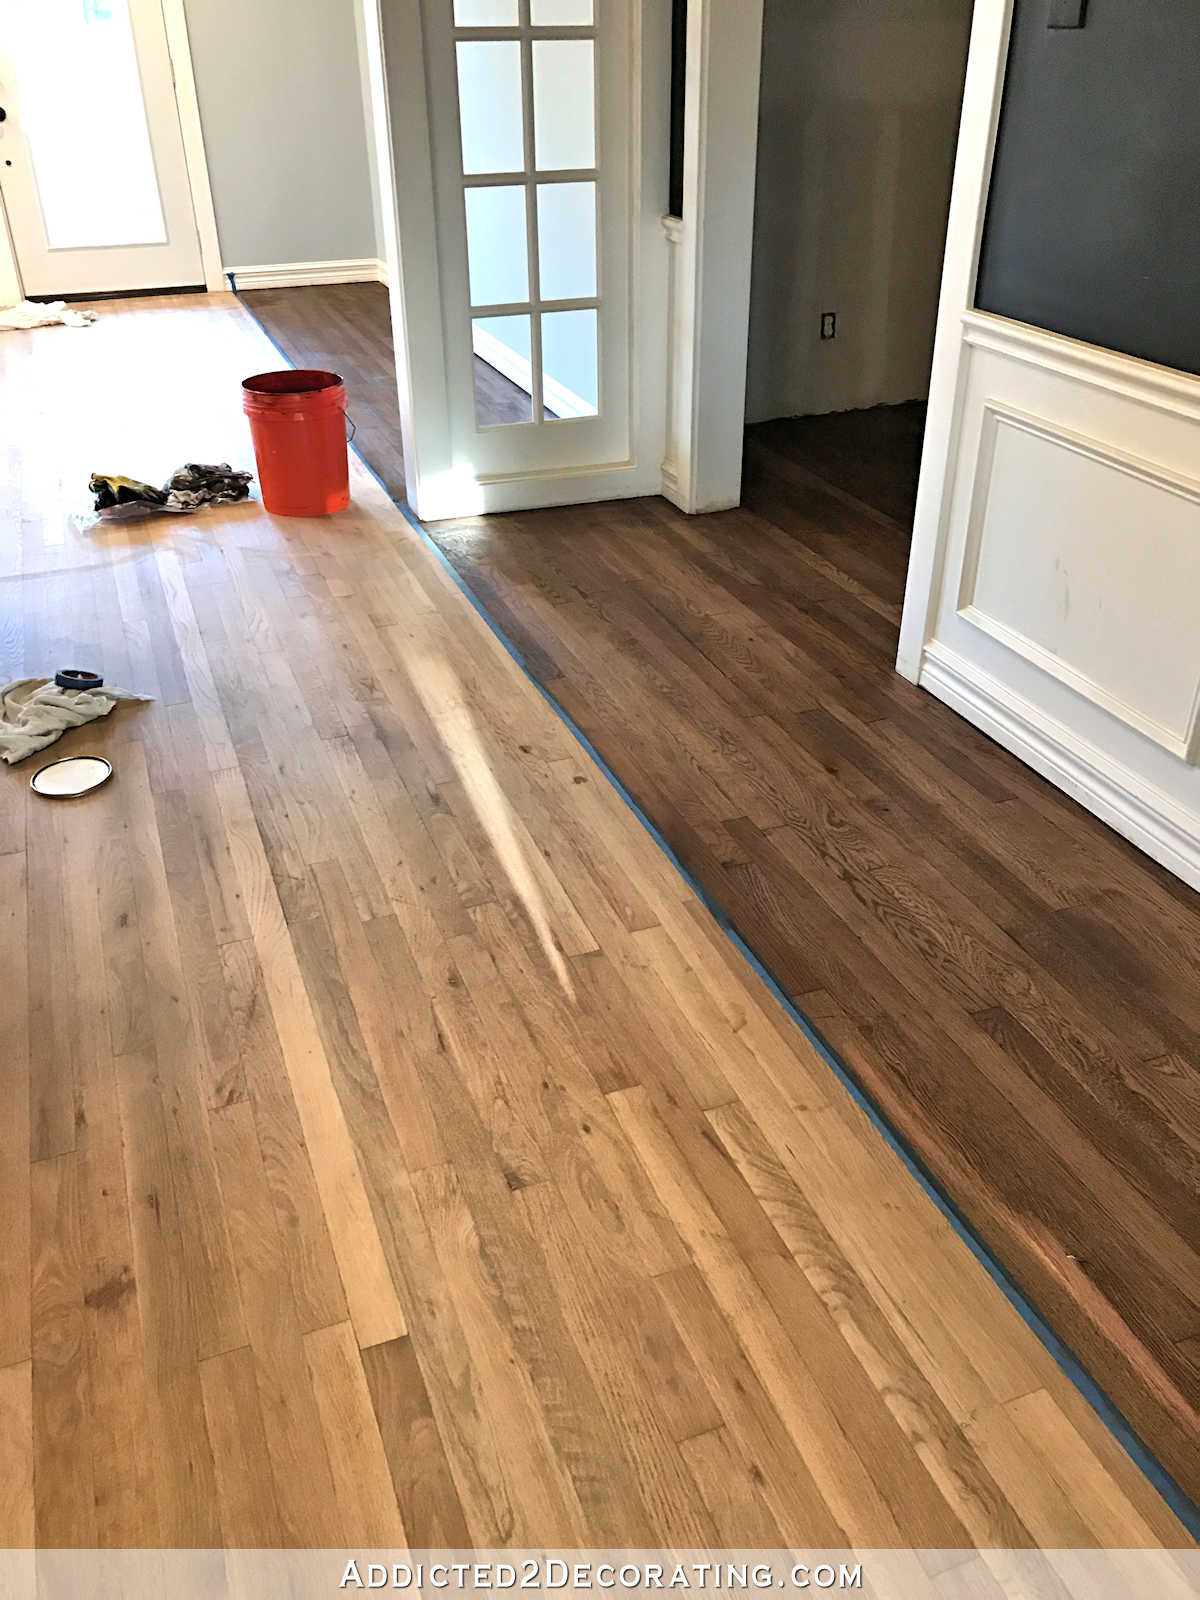 refinishing hardwood floors one room at a time of adventures in staining my red oak hardwood floors products process within staining red oak hardwood floors 6 stain on partial floor in entryway and music room